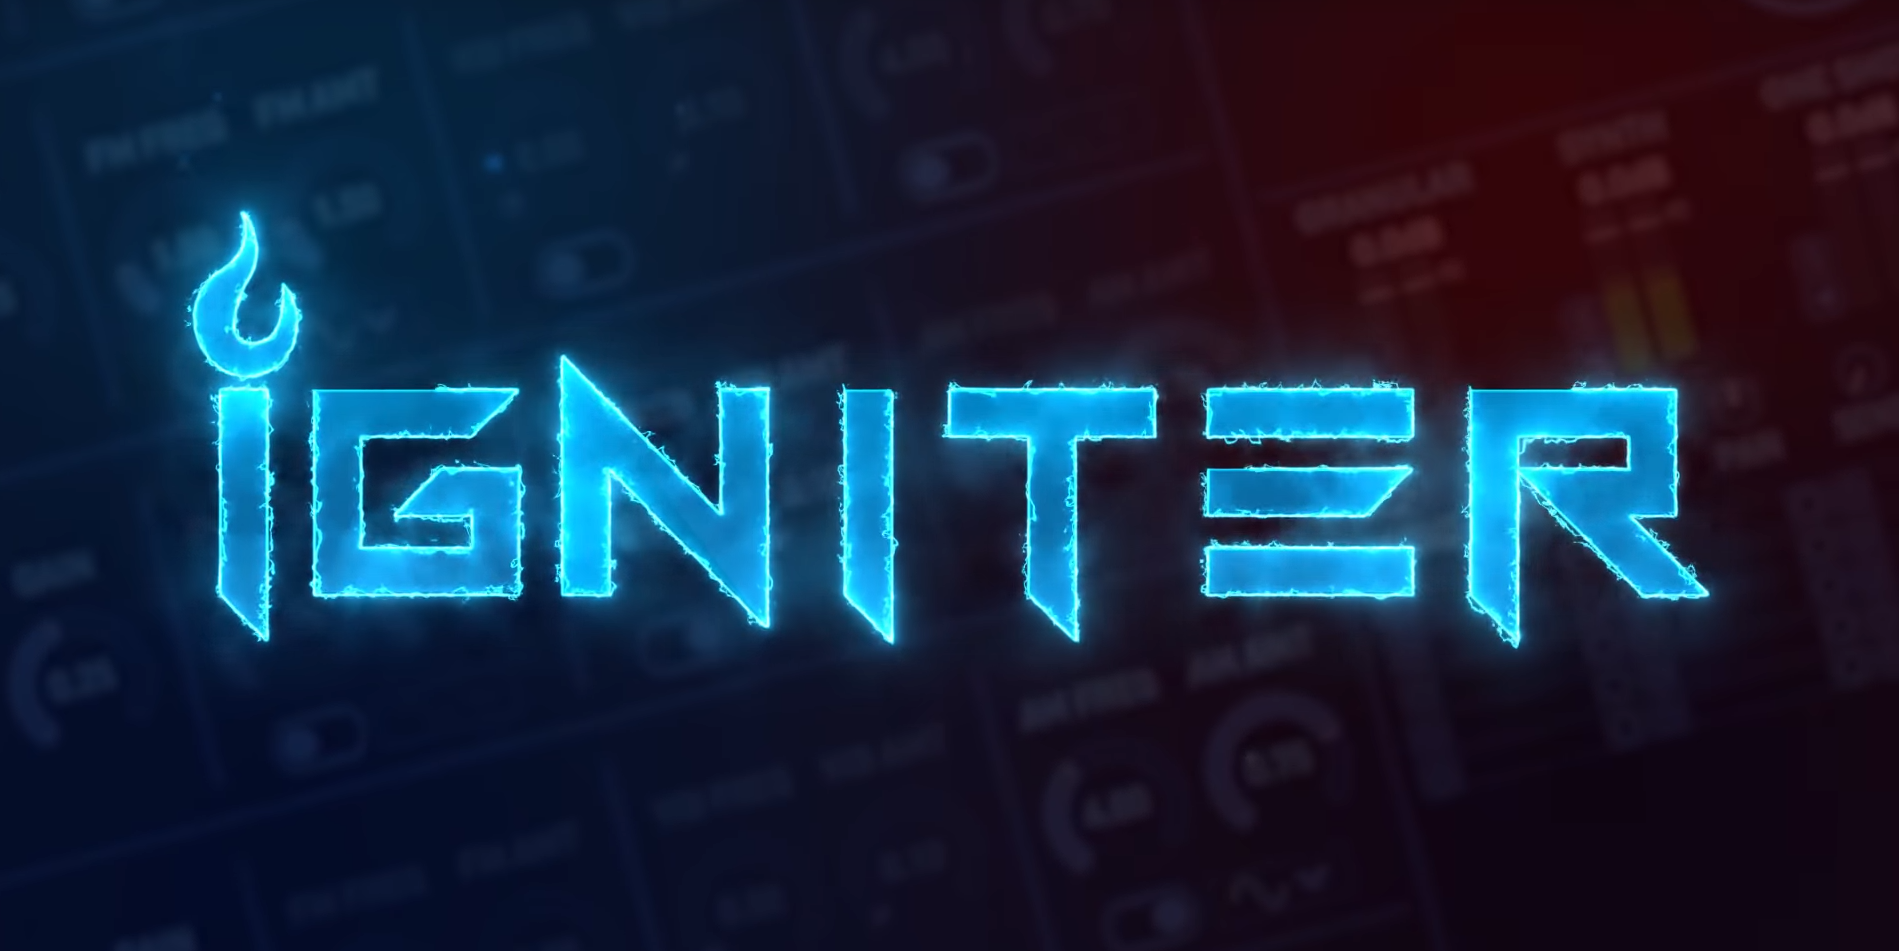 I'm pleased to announced that my vehicle sounds were used in   Igniter  , a new vehicle audio software made by  Krotos Audio . This software will allow to you control how vehicles will sound for game development. Click   HERE   to their video!